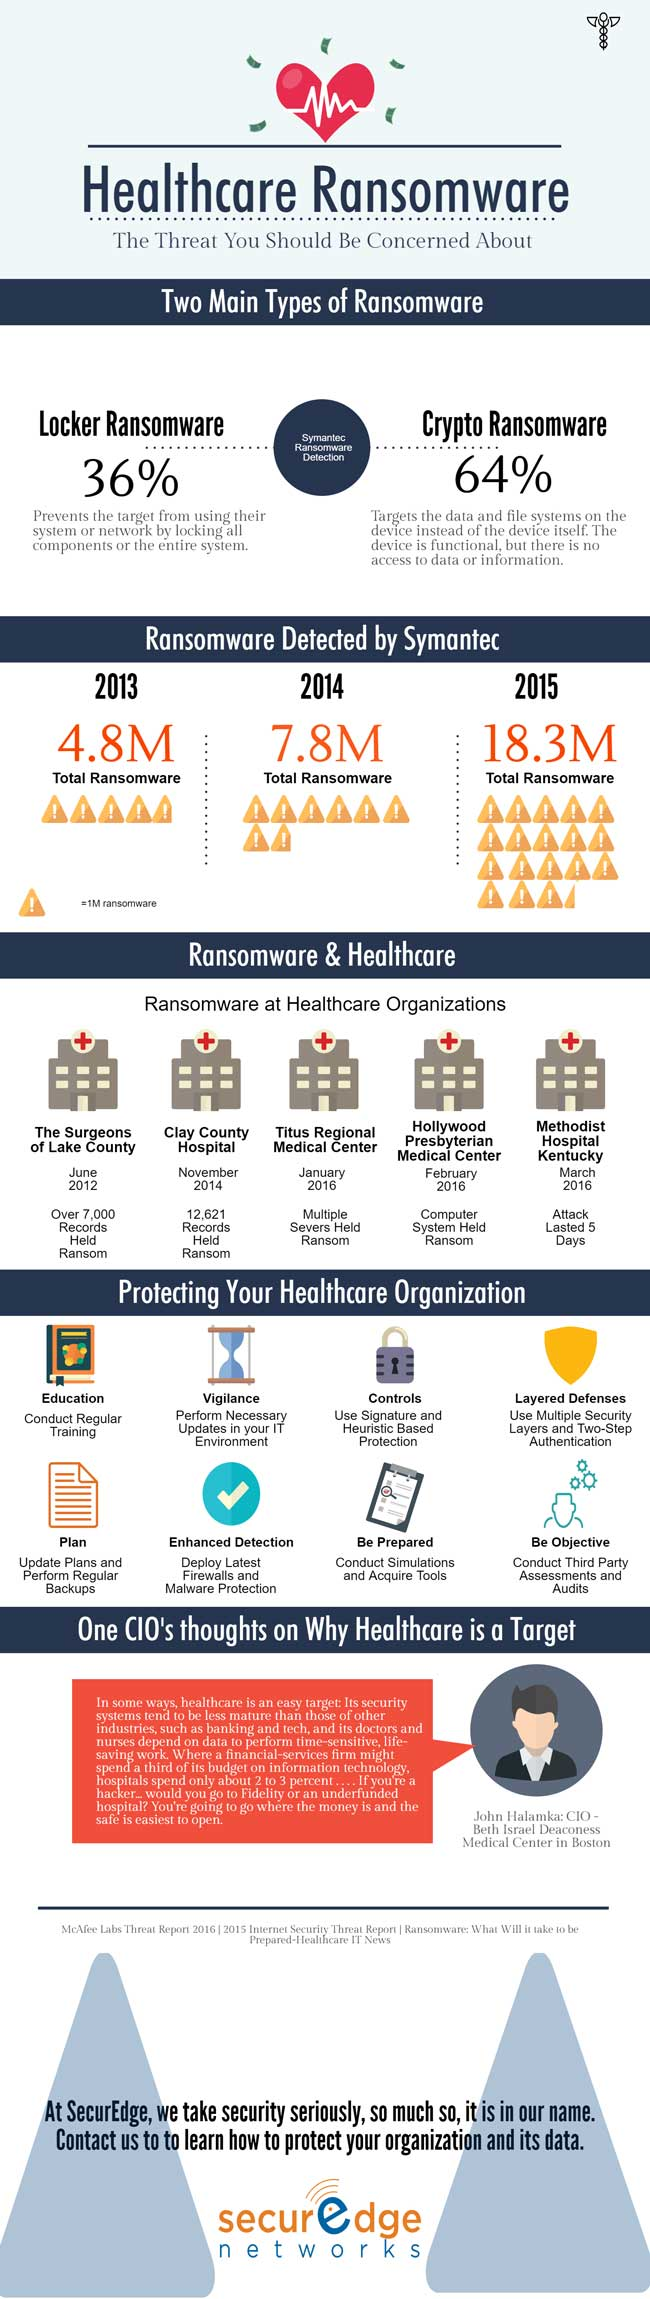 ransomware-the-healthcare-IT-security-threat-you-should-be-worried-about.jpg